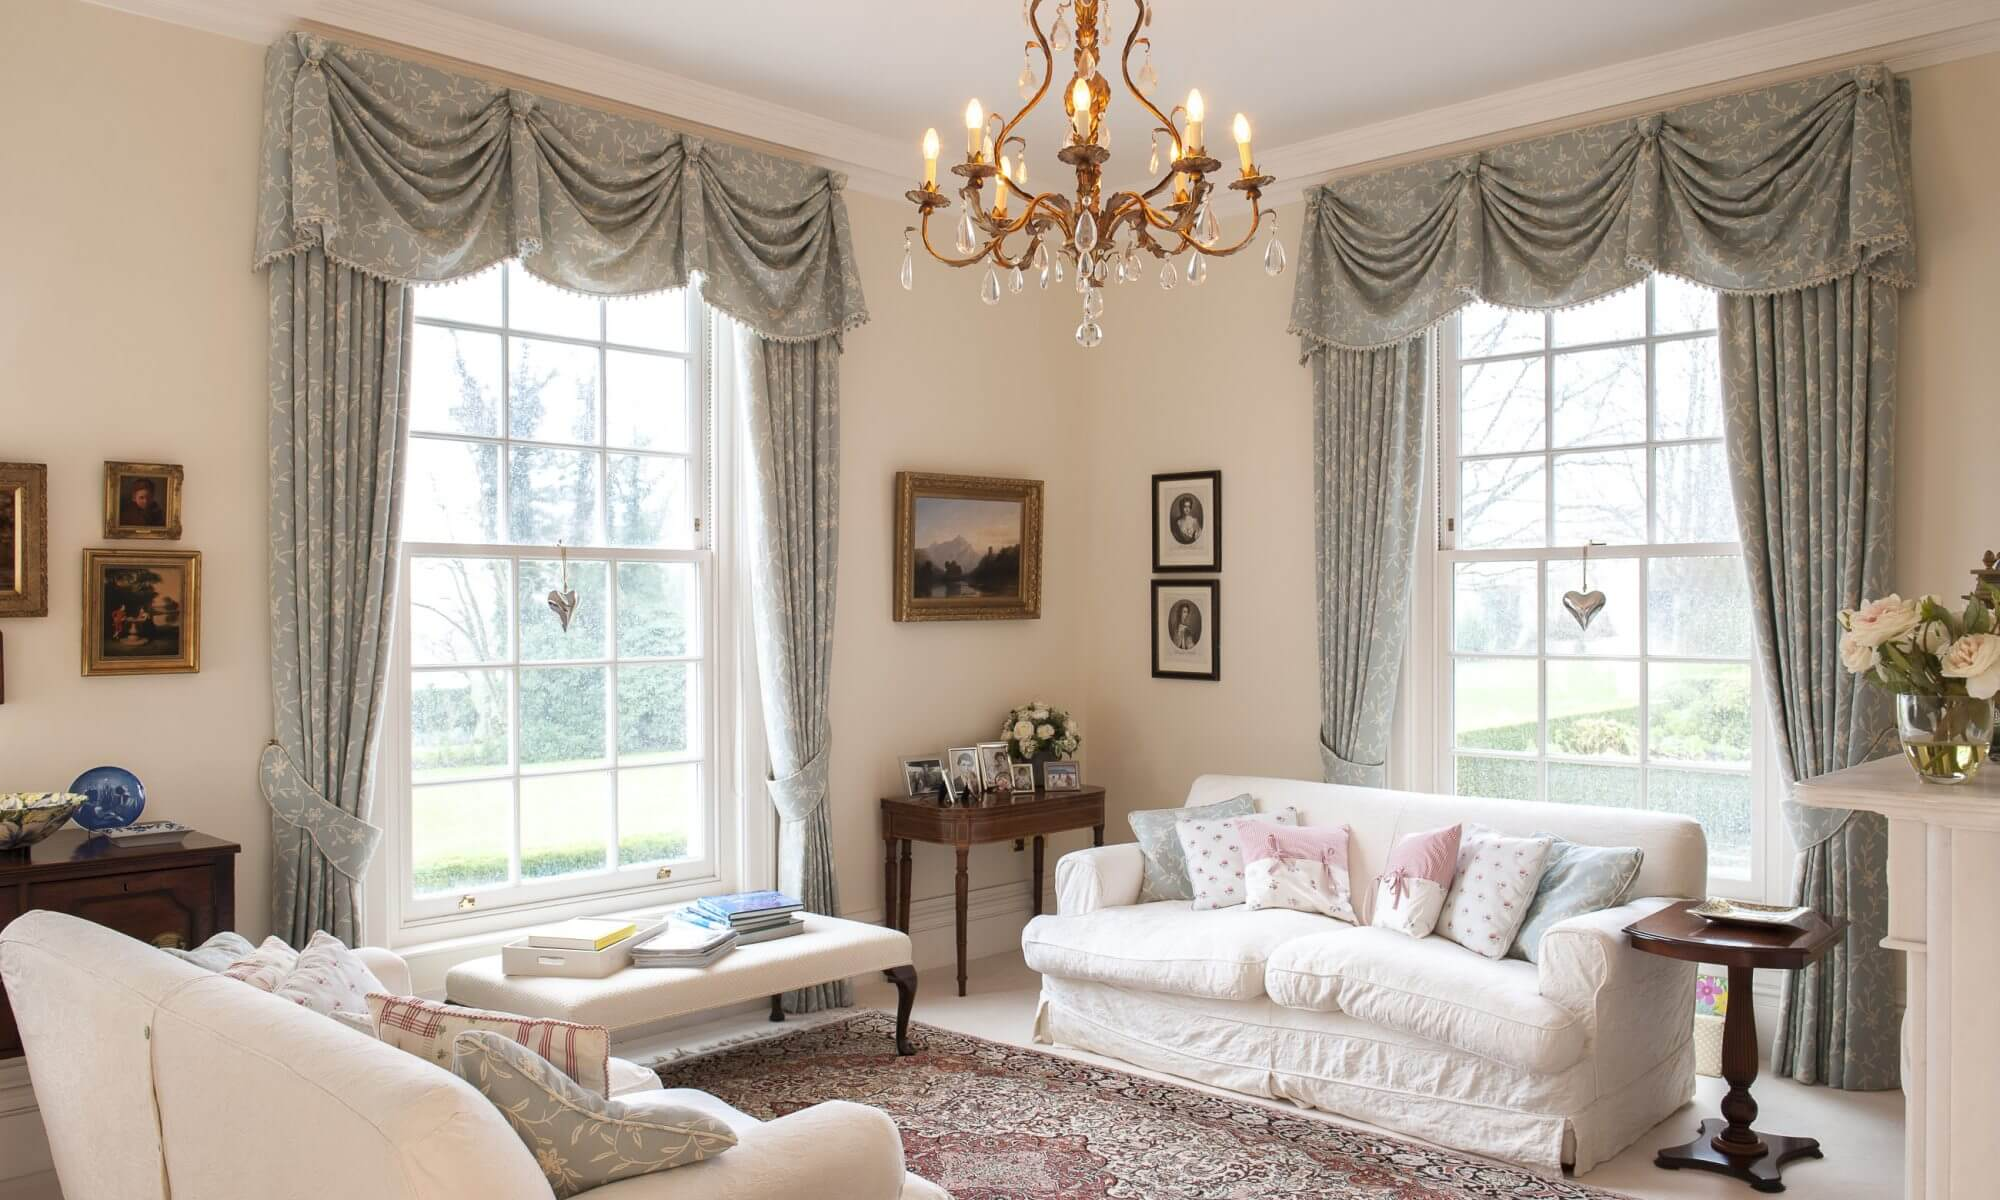 How To Pick Living Room Curtains For Your Home Interiorcraze